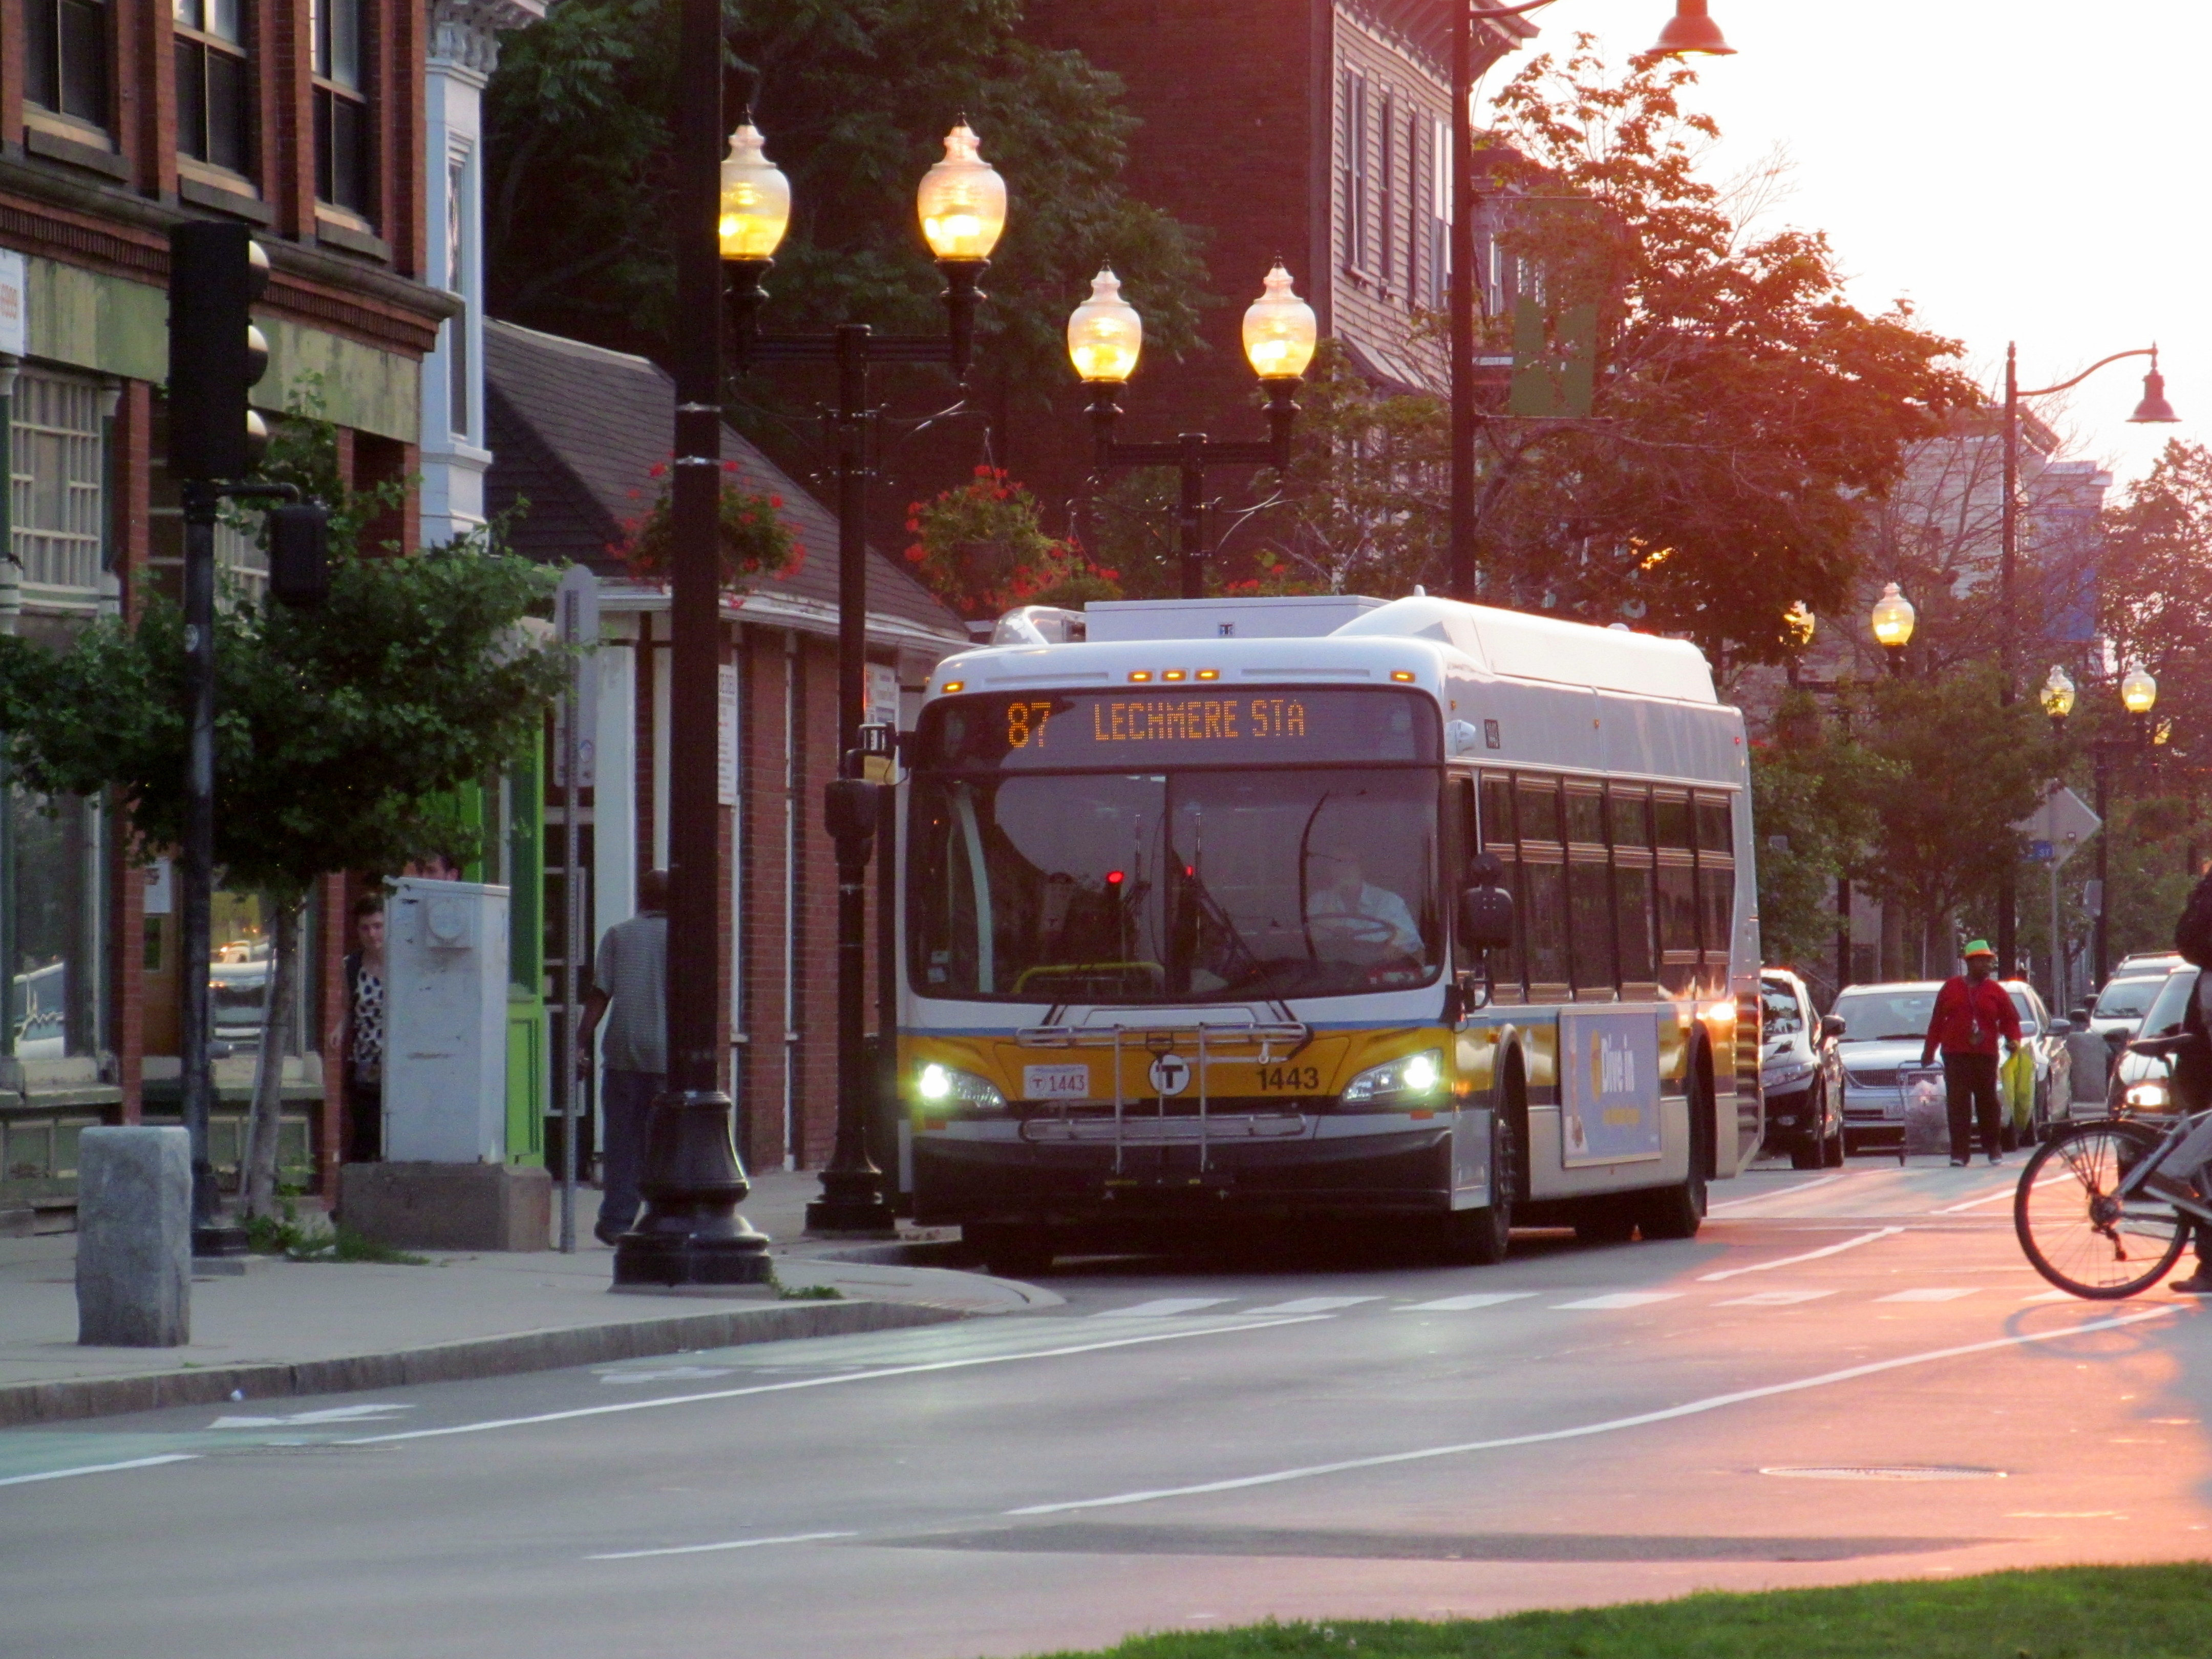 File:MBTA route 87 bus on Somerville Avenue near Union Square, July